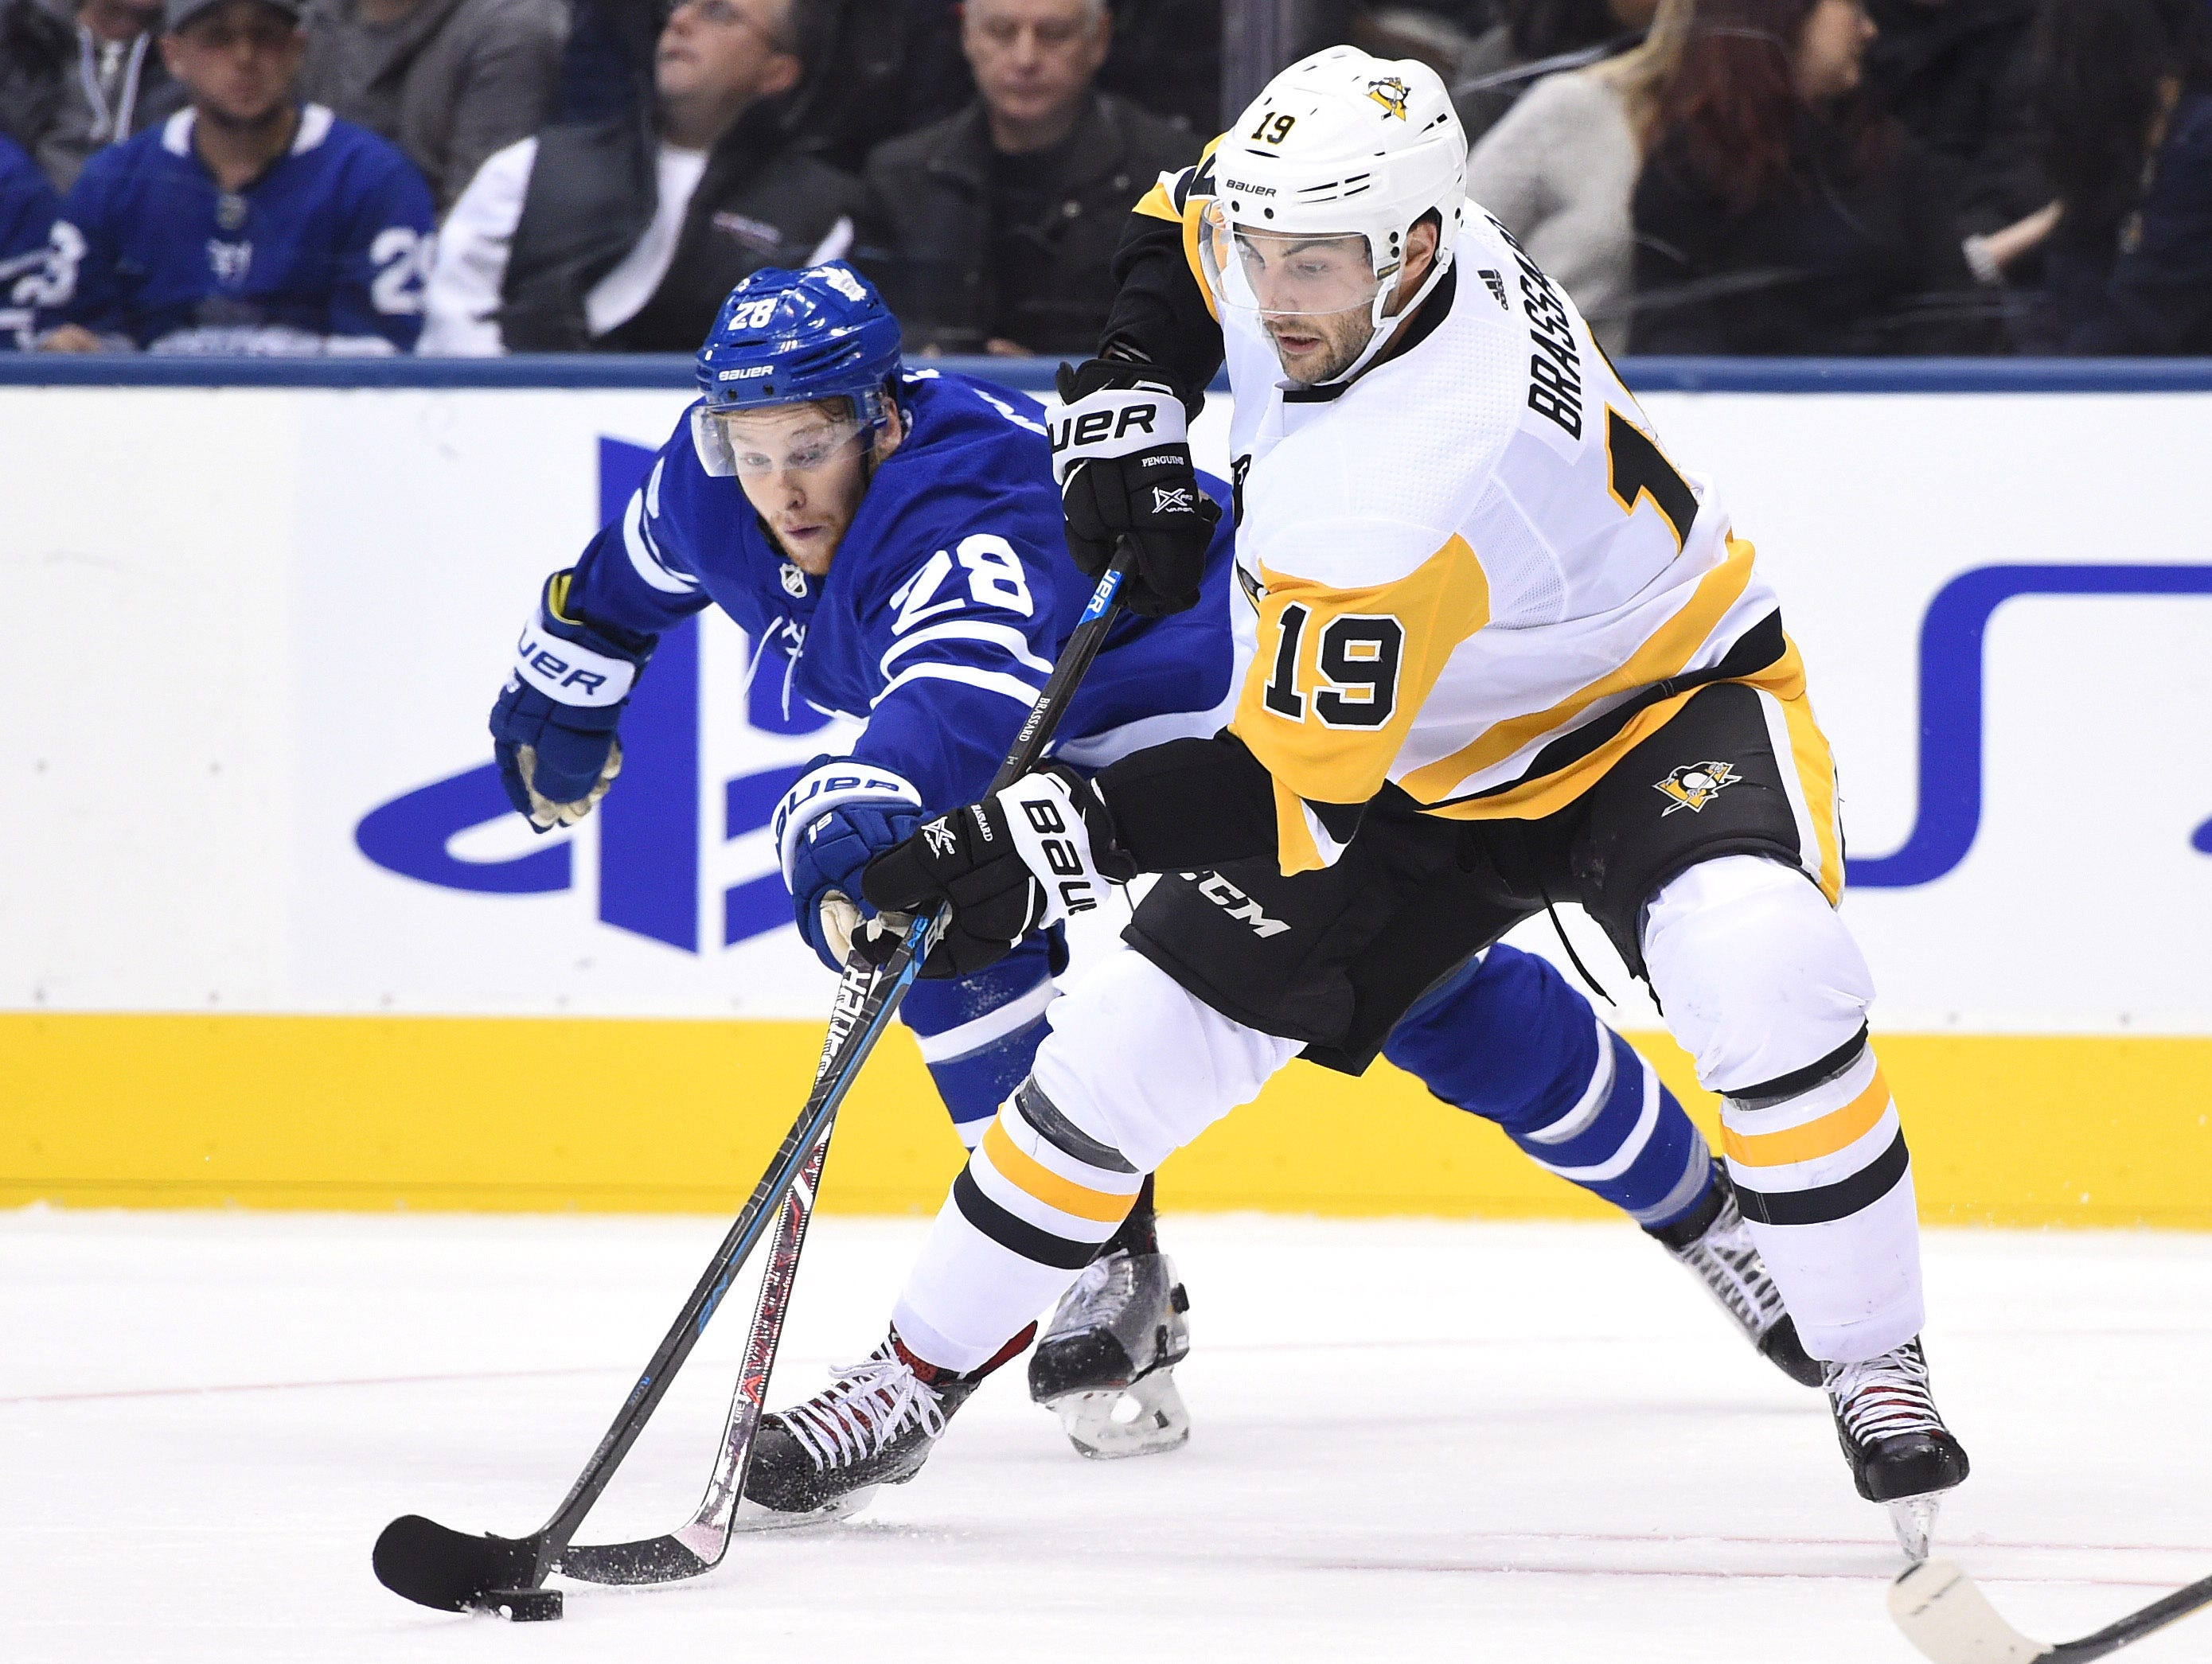 Oct. 18: Toronto Maple Leafs forward Connor Brown (28) attempts to poke the puck away from Pittsburgh Penguins forward Derick Brassard (19) in the third period at Scotiabank Arena.